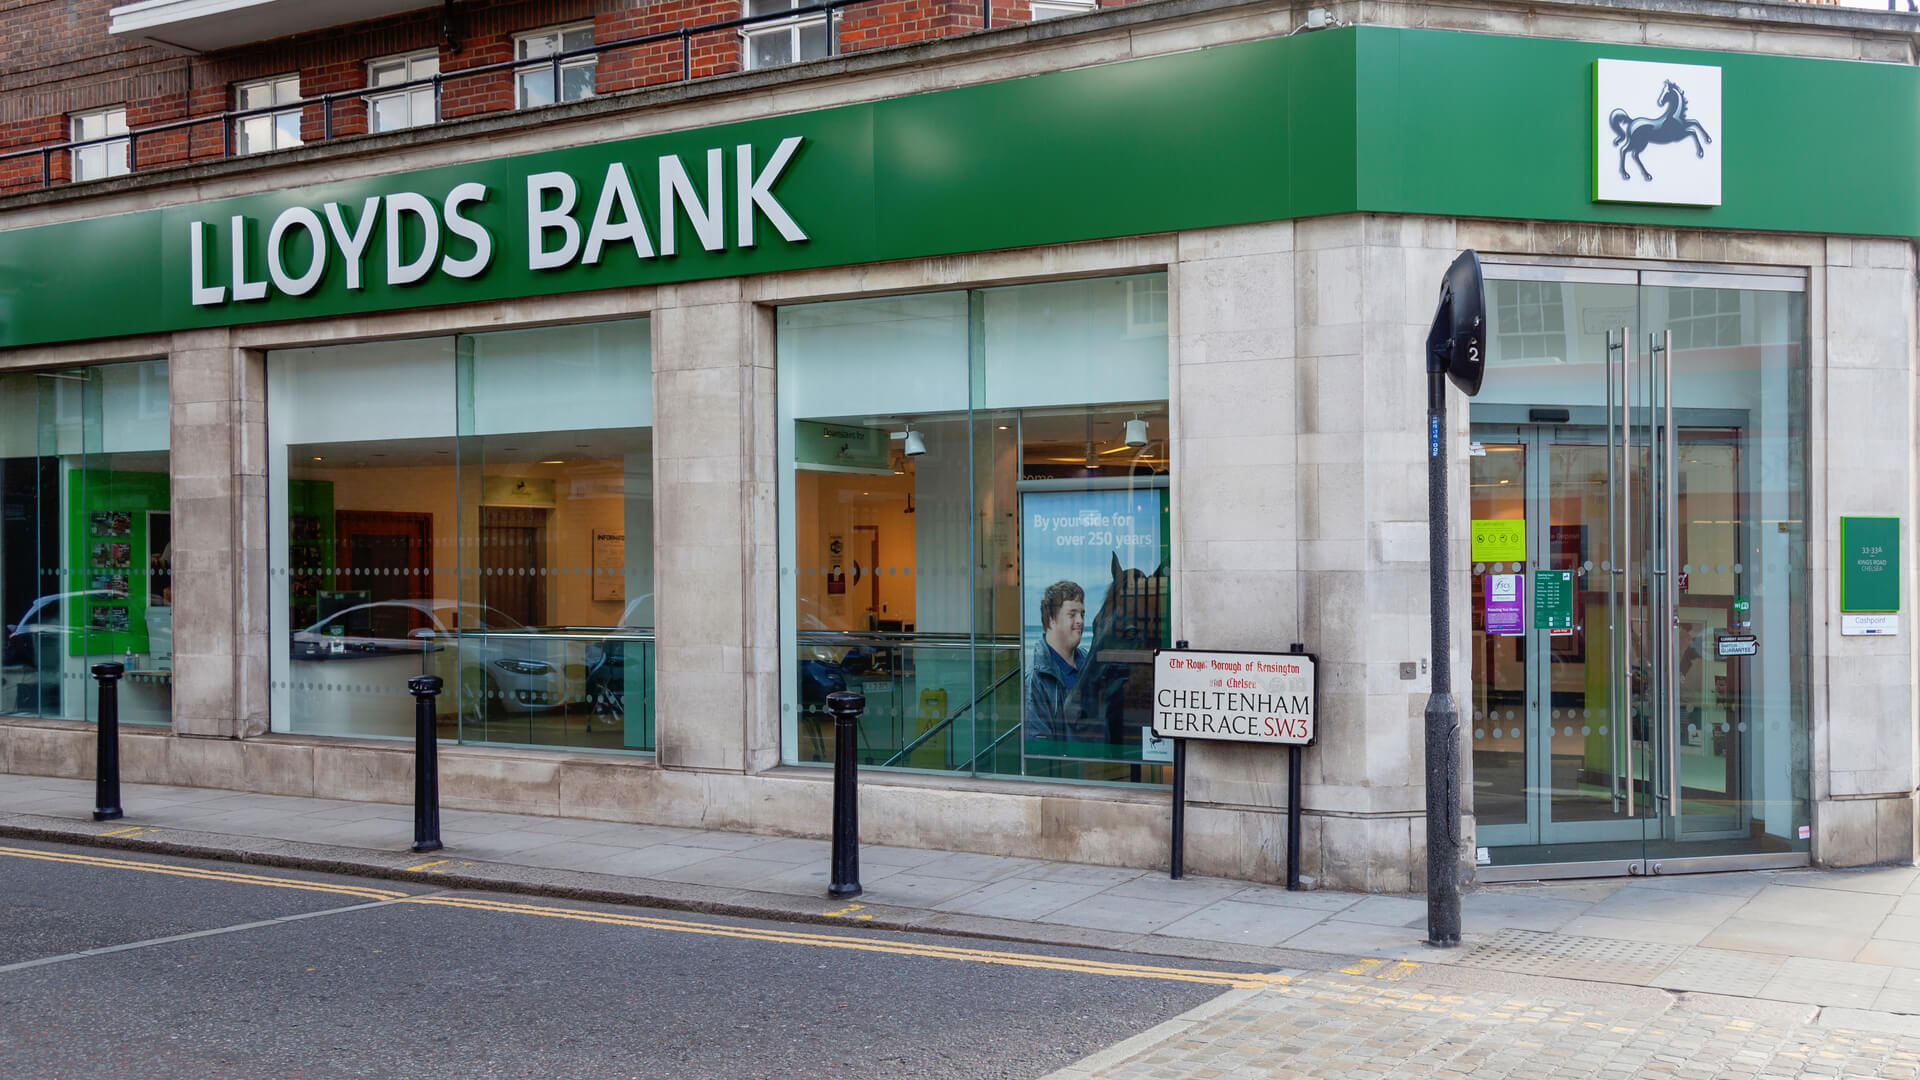 Llyods Bank - How to buy Llyds bank online | Learnbonds